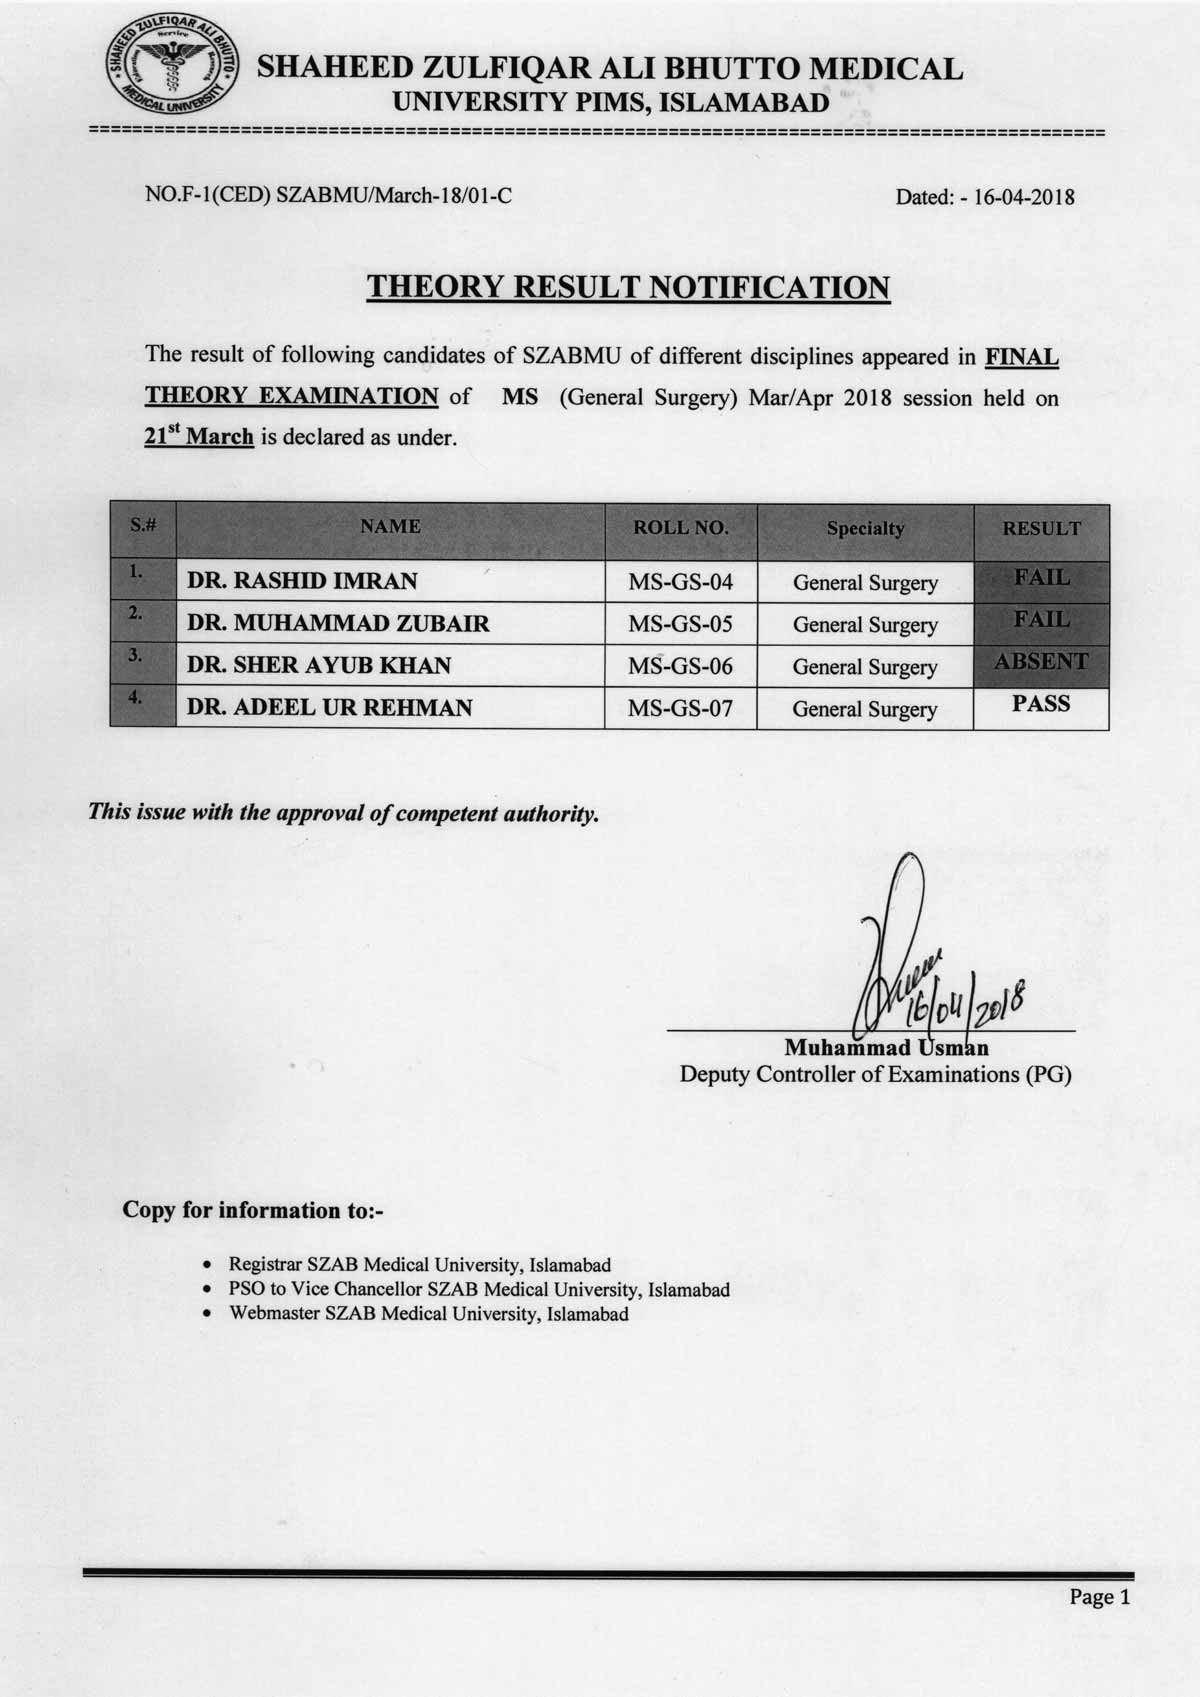 Result Notification of MS General Surgery Final Theory Examination